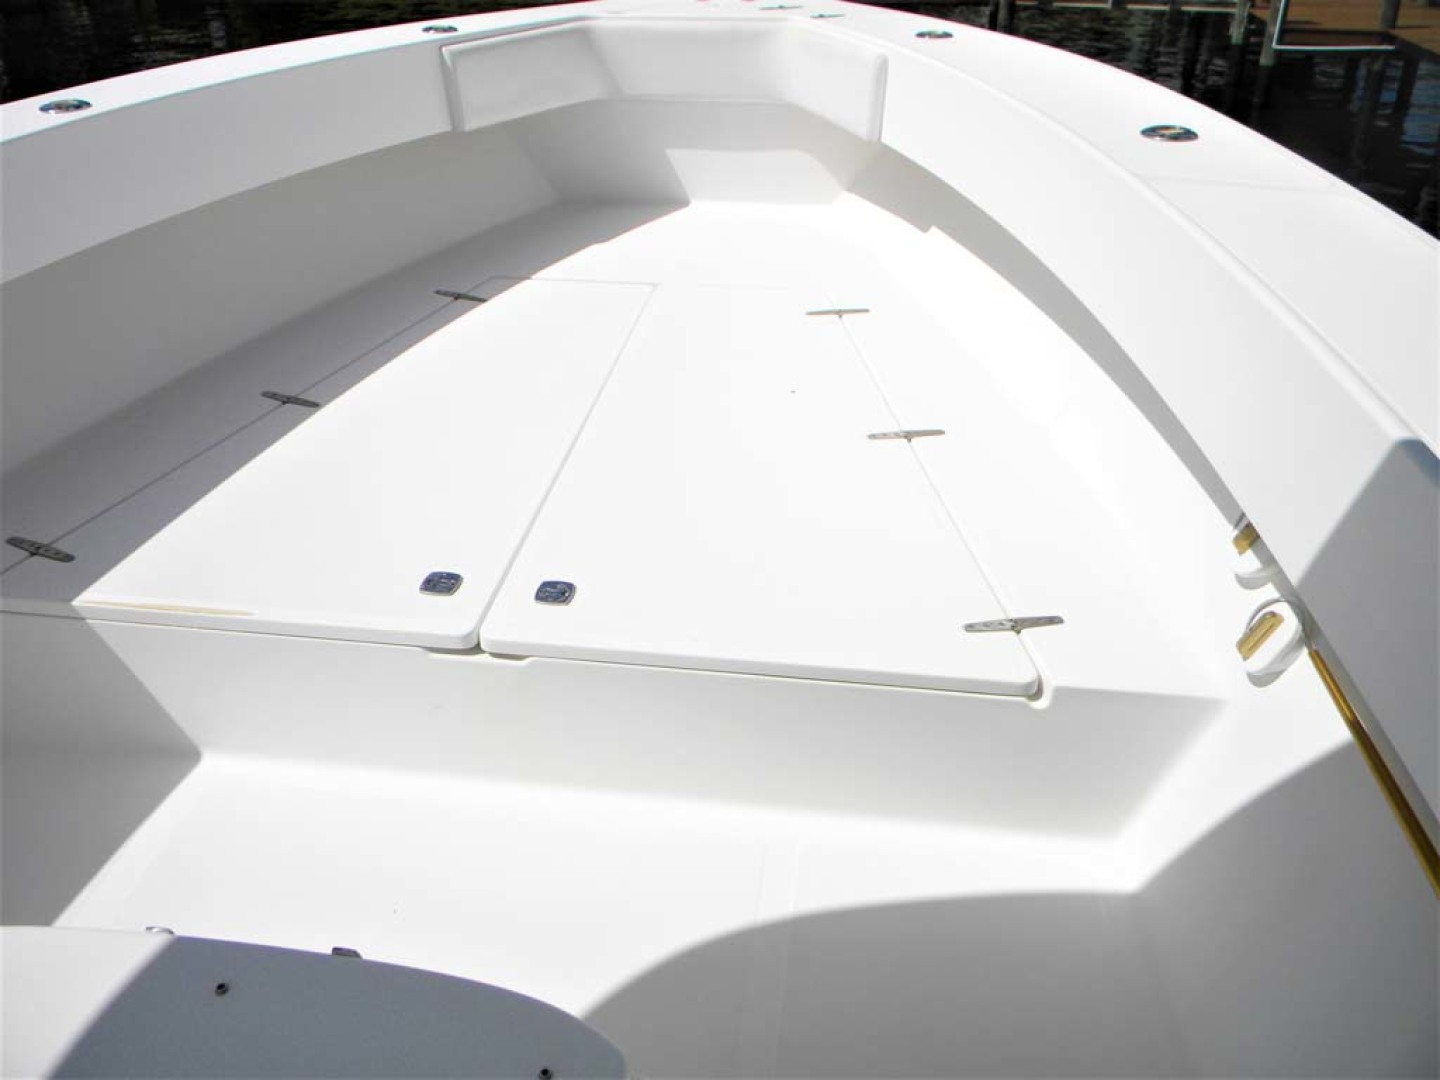 Venture-34 Center Console 2006-DILLIGAF Palm City-Florida-United States-Foredeck-1068570 | Thumbnail